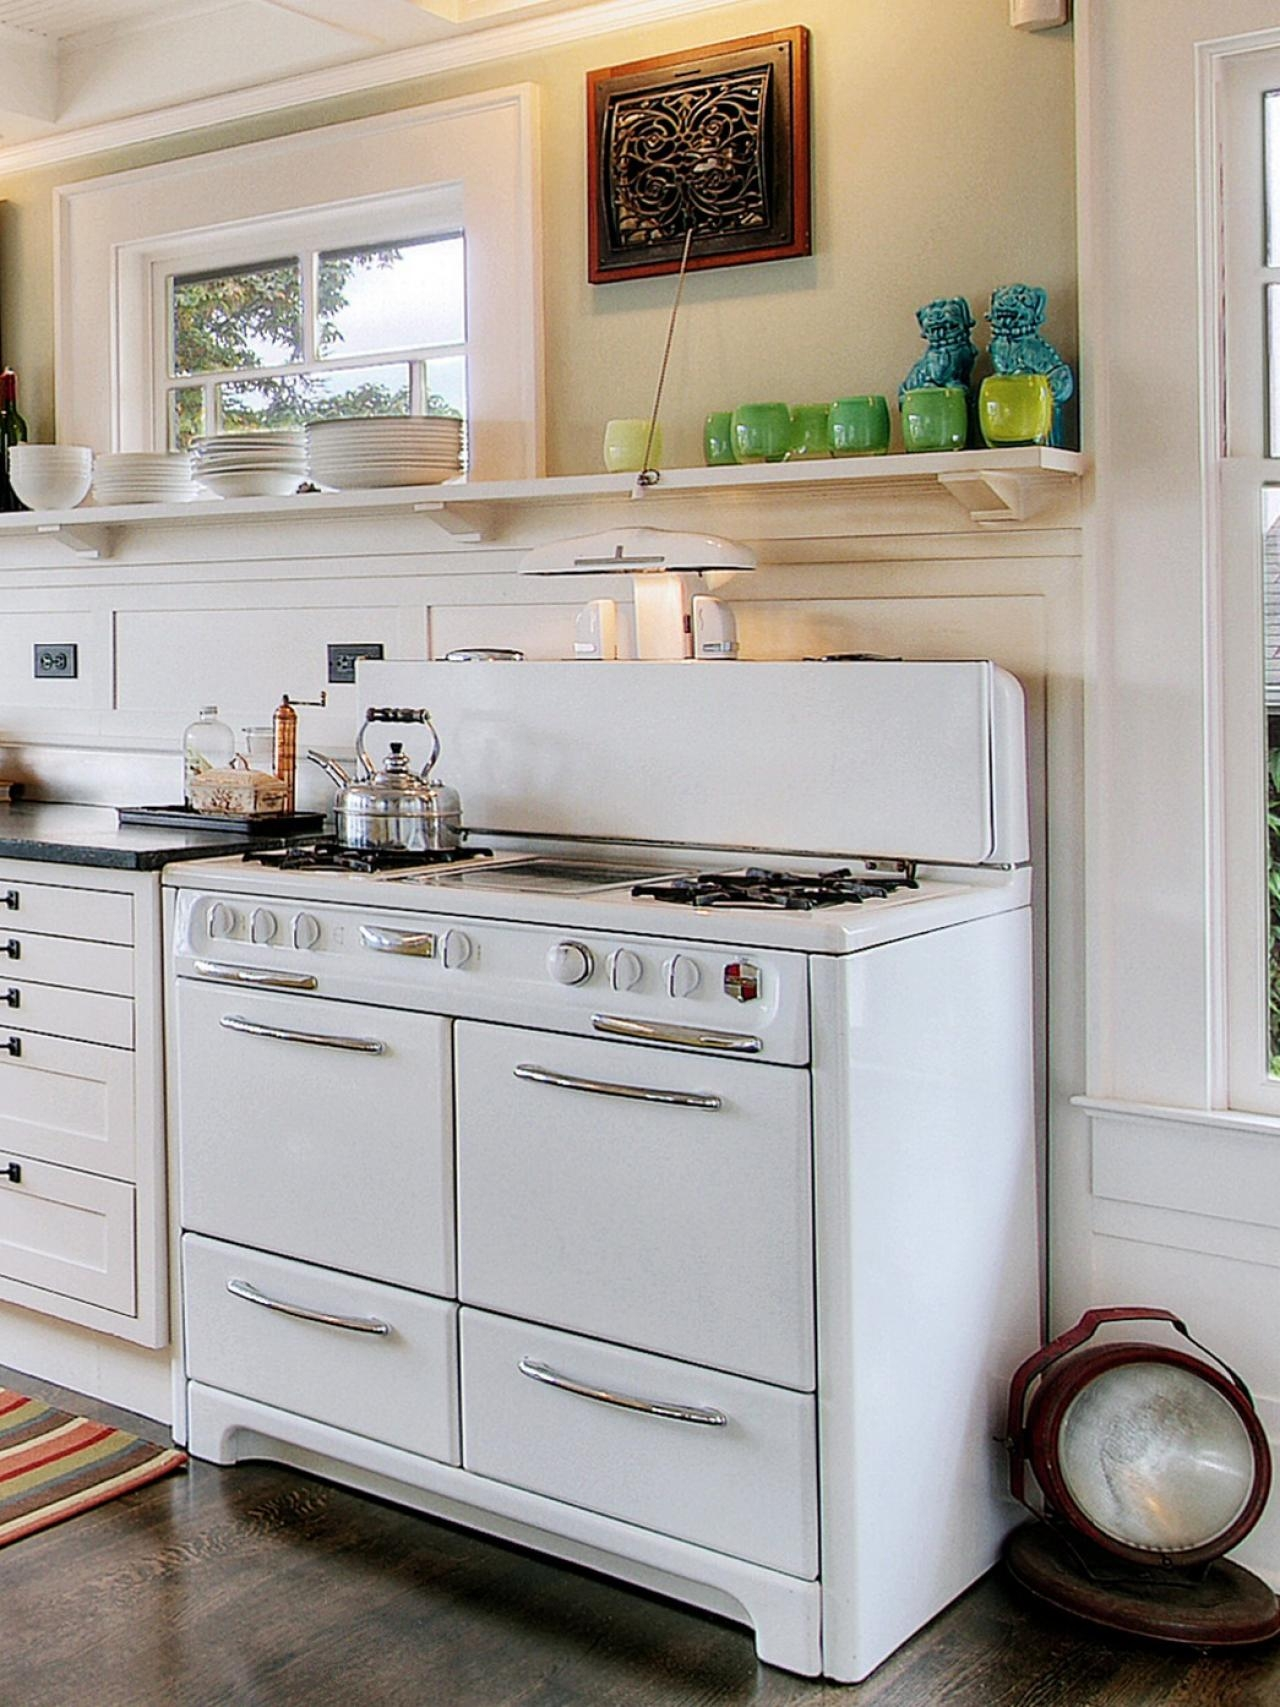 Reuse Existing Kitchen Cabinets